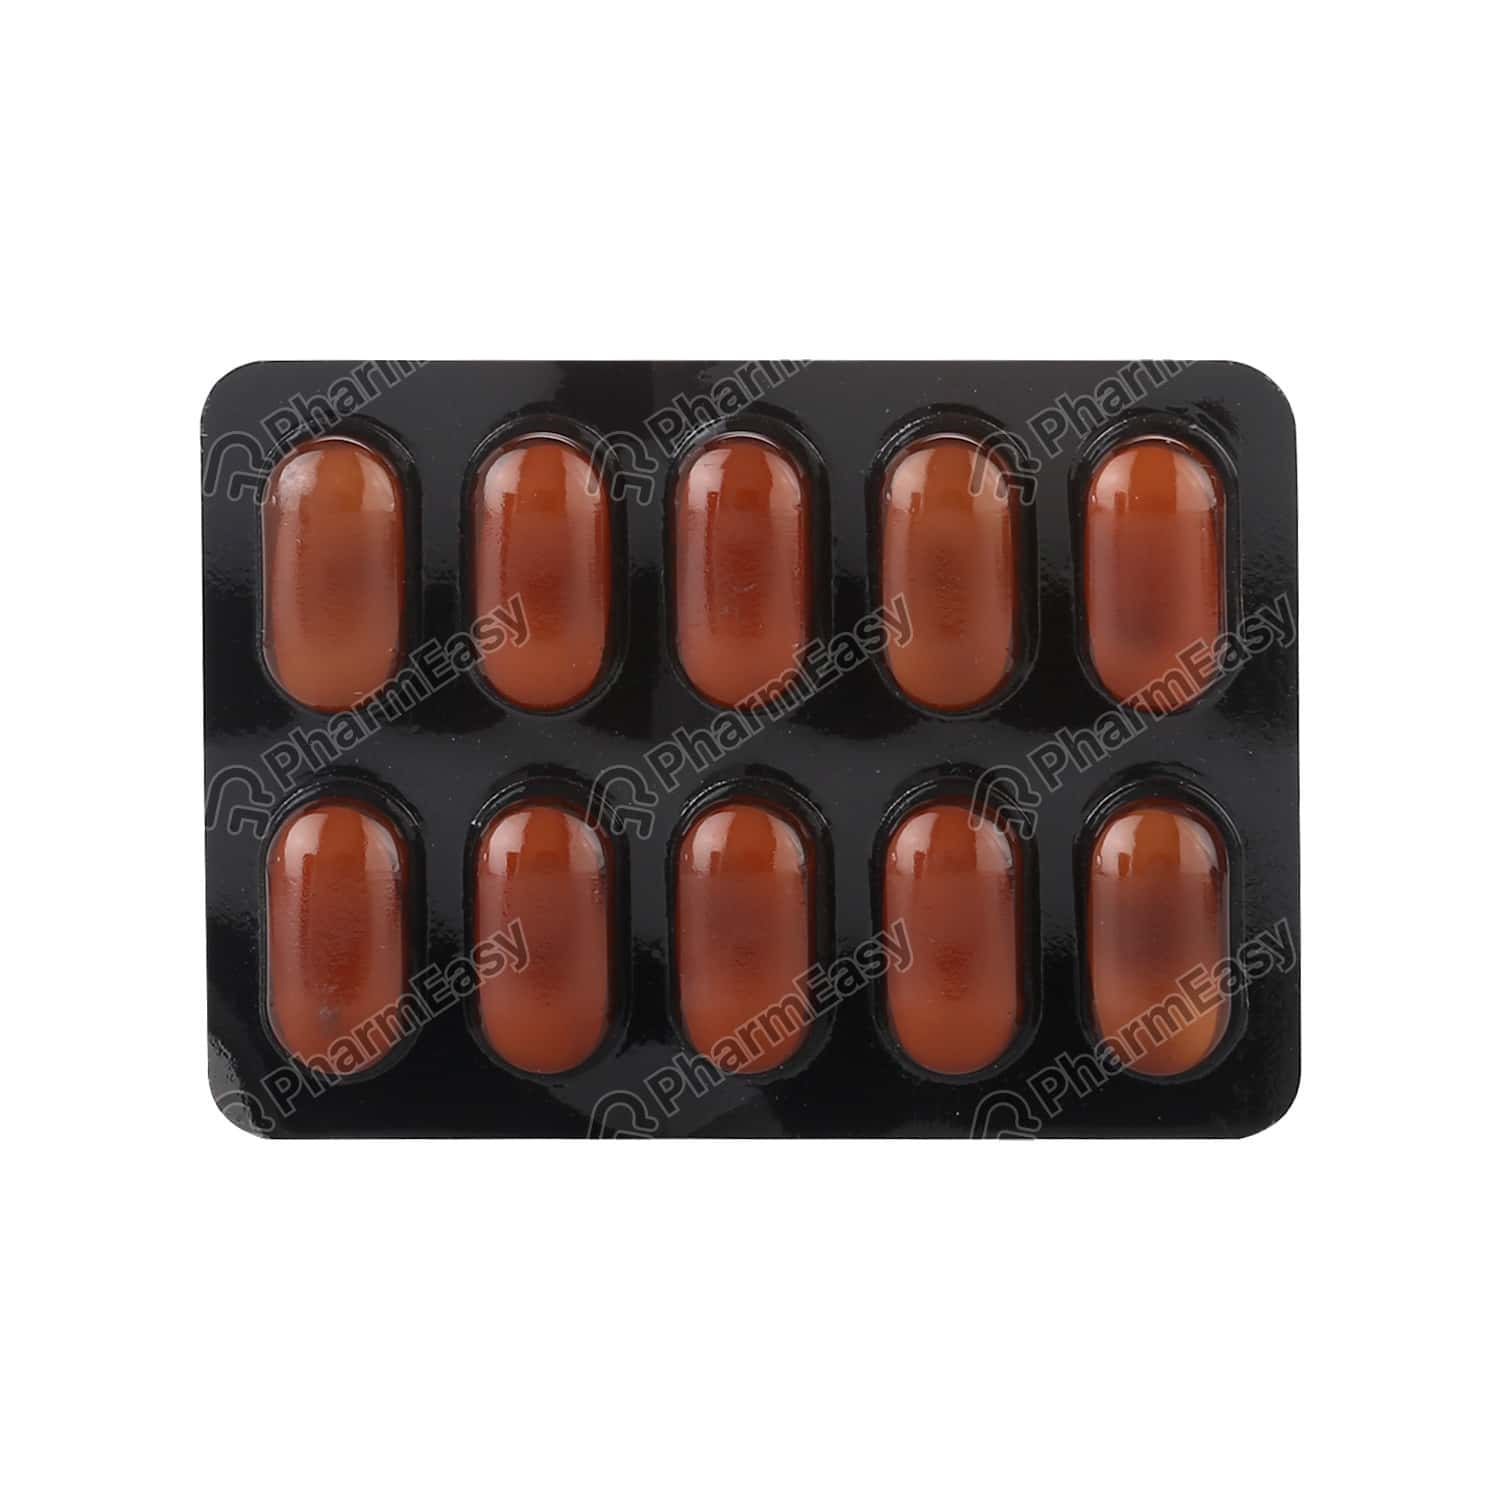 Zuvog M 0.2mg Tablet